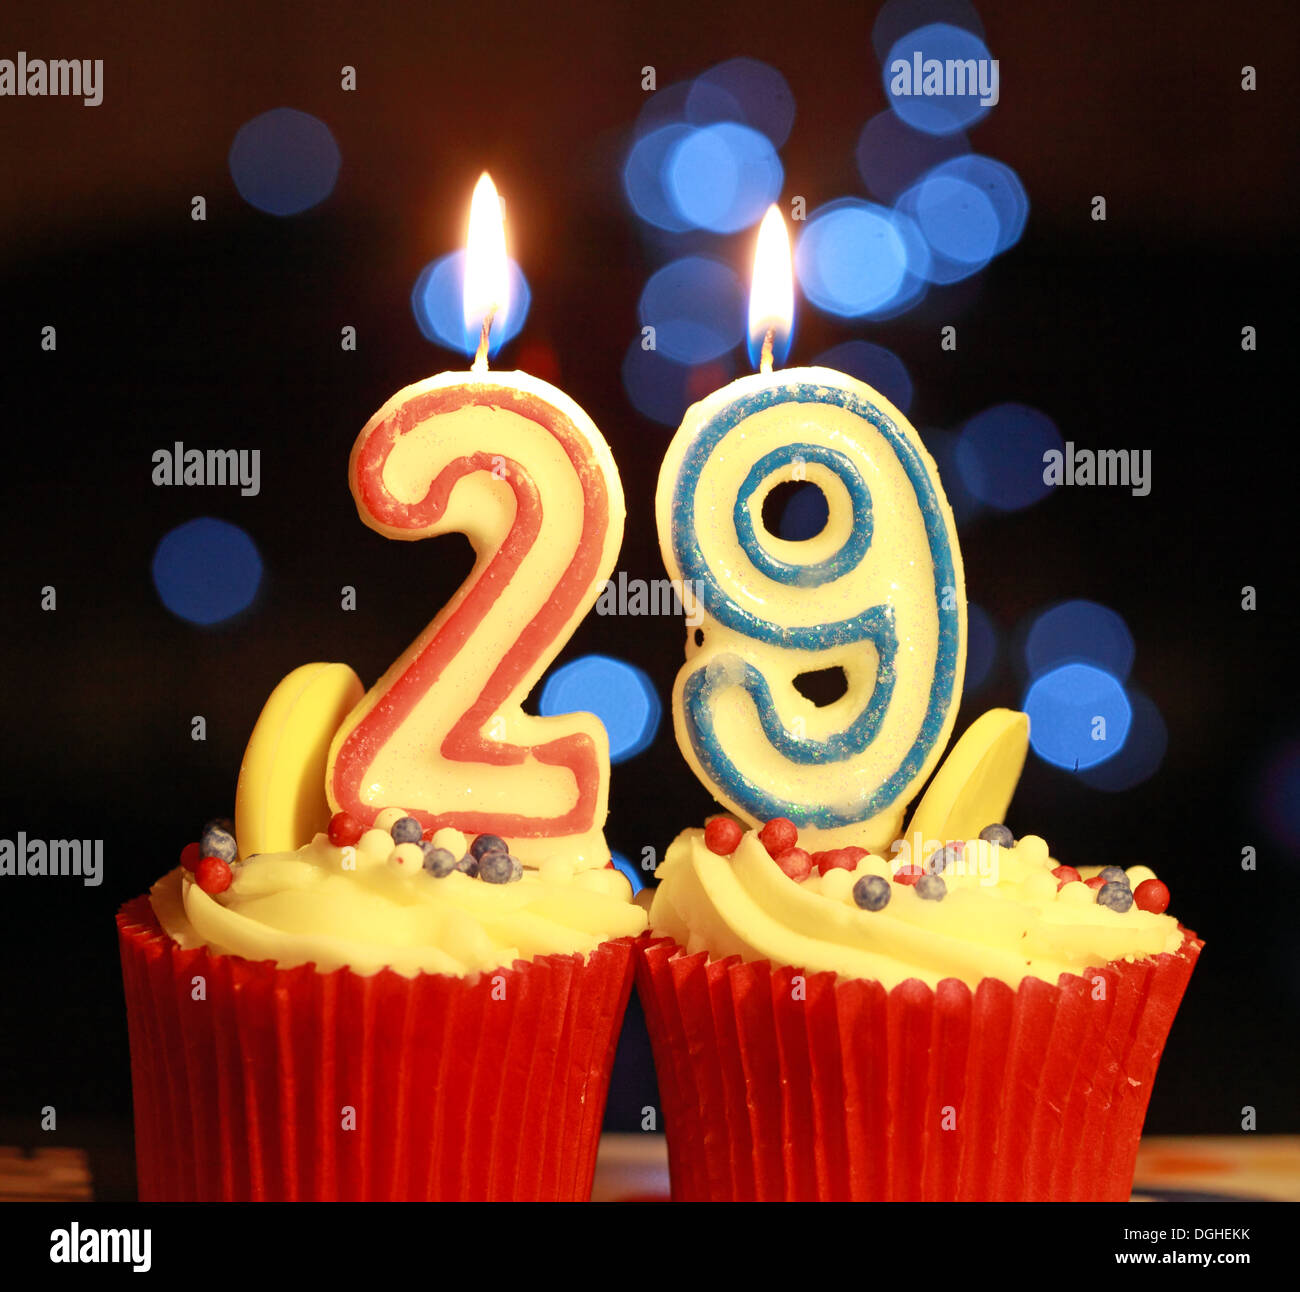 Twentynine The Number 29 As Burning Candles On Iced Muffin Stock